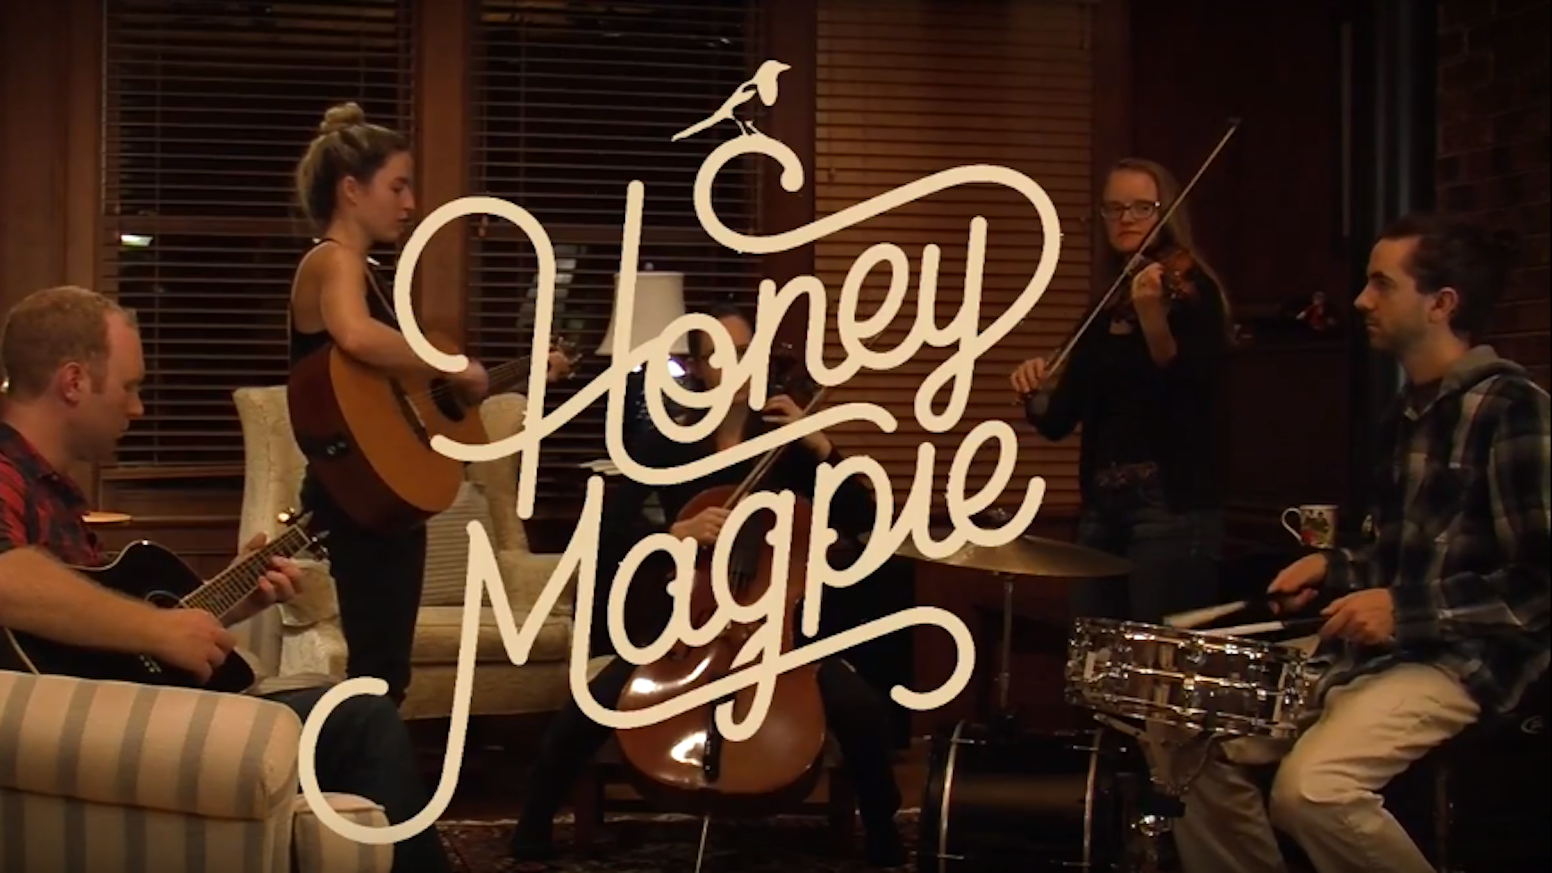 Honey Magpie, a five-piece indie-folk band from Chapel Hill, NC, will record their debut album this November and needs your help!